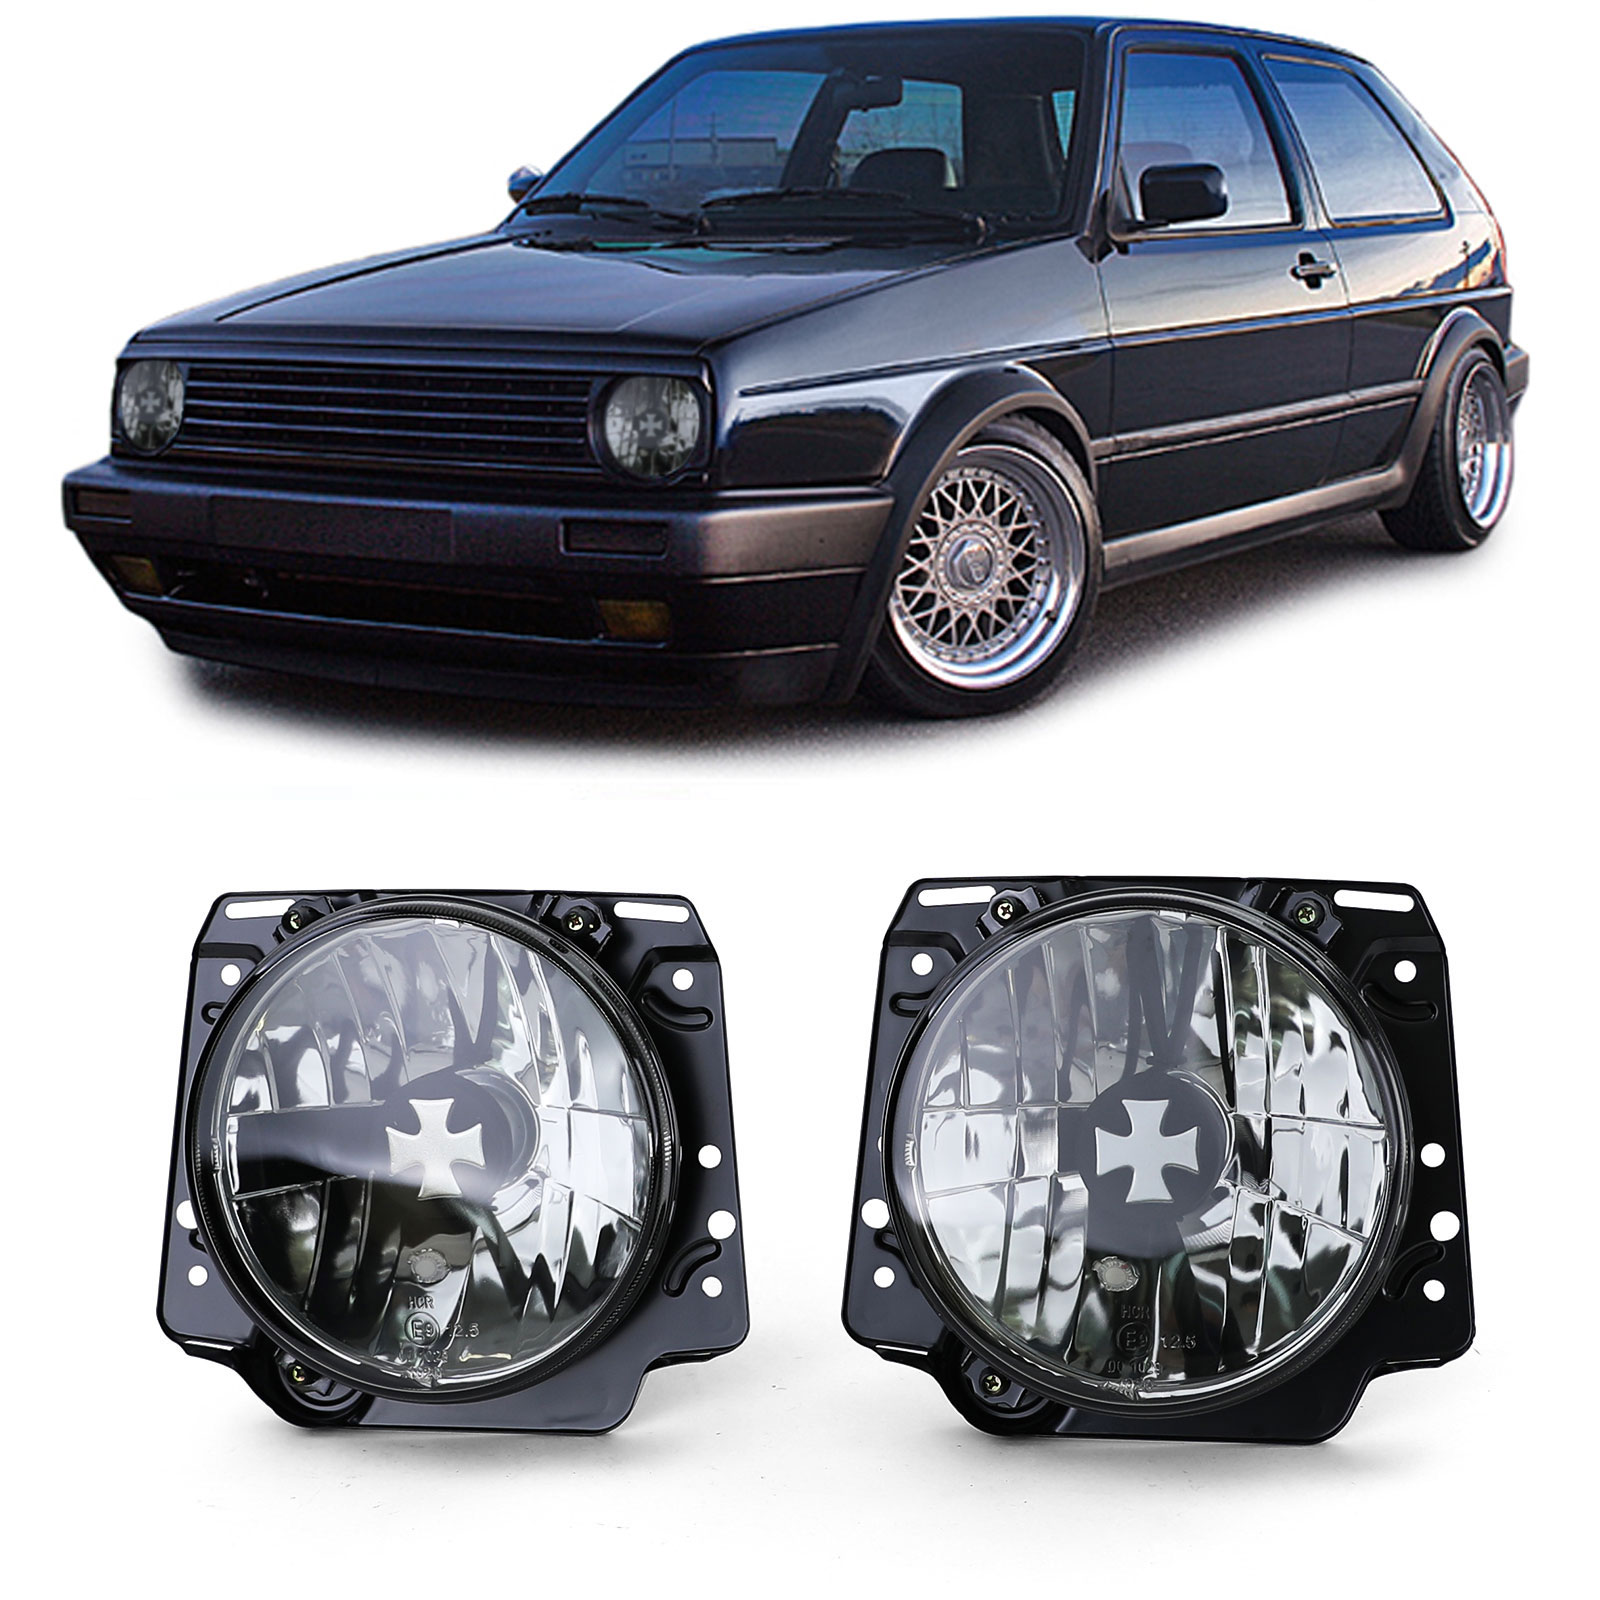 Farois VW Golf 2 Iron Cross fumados